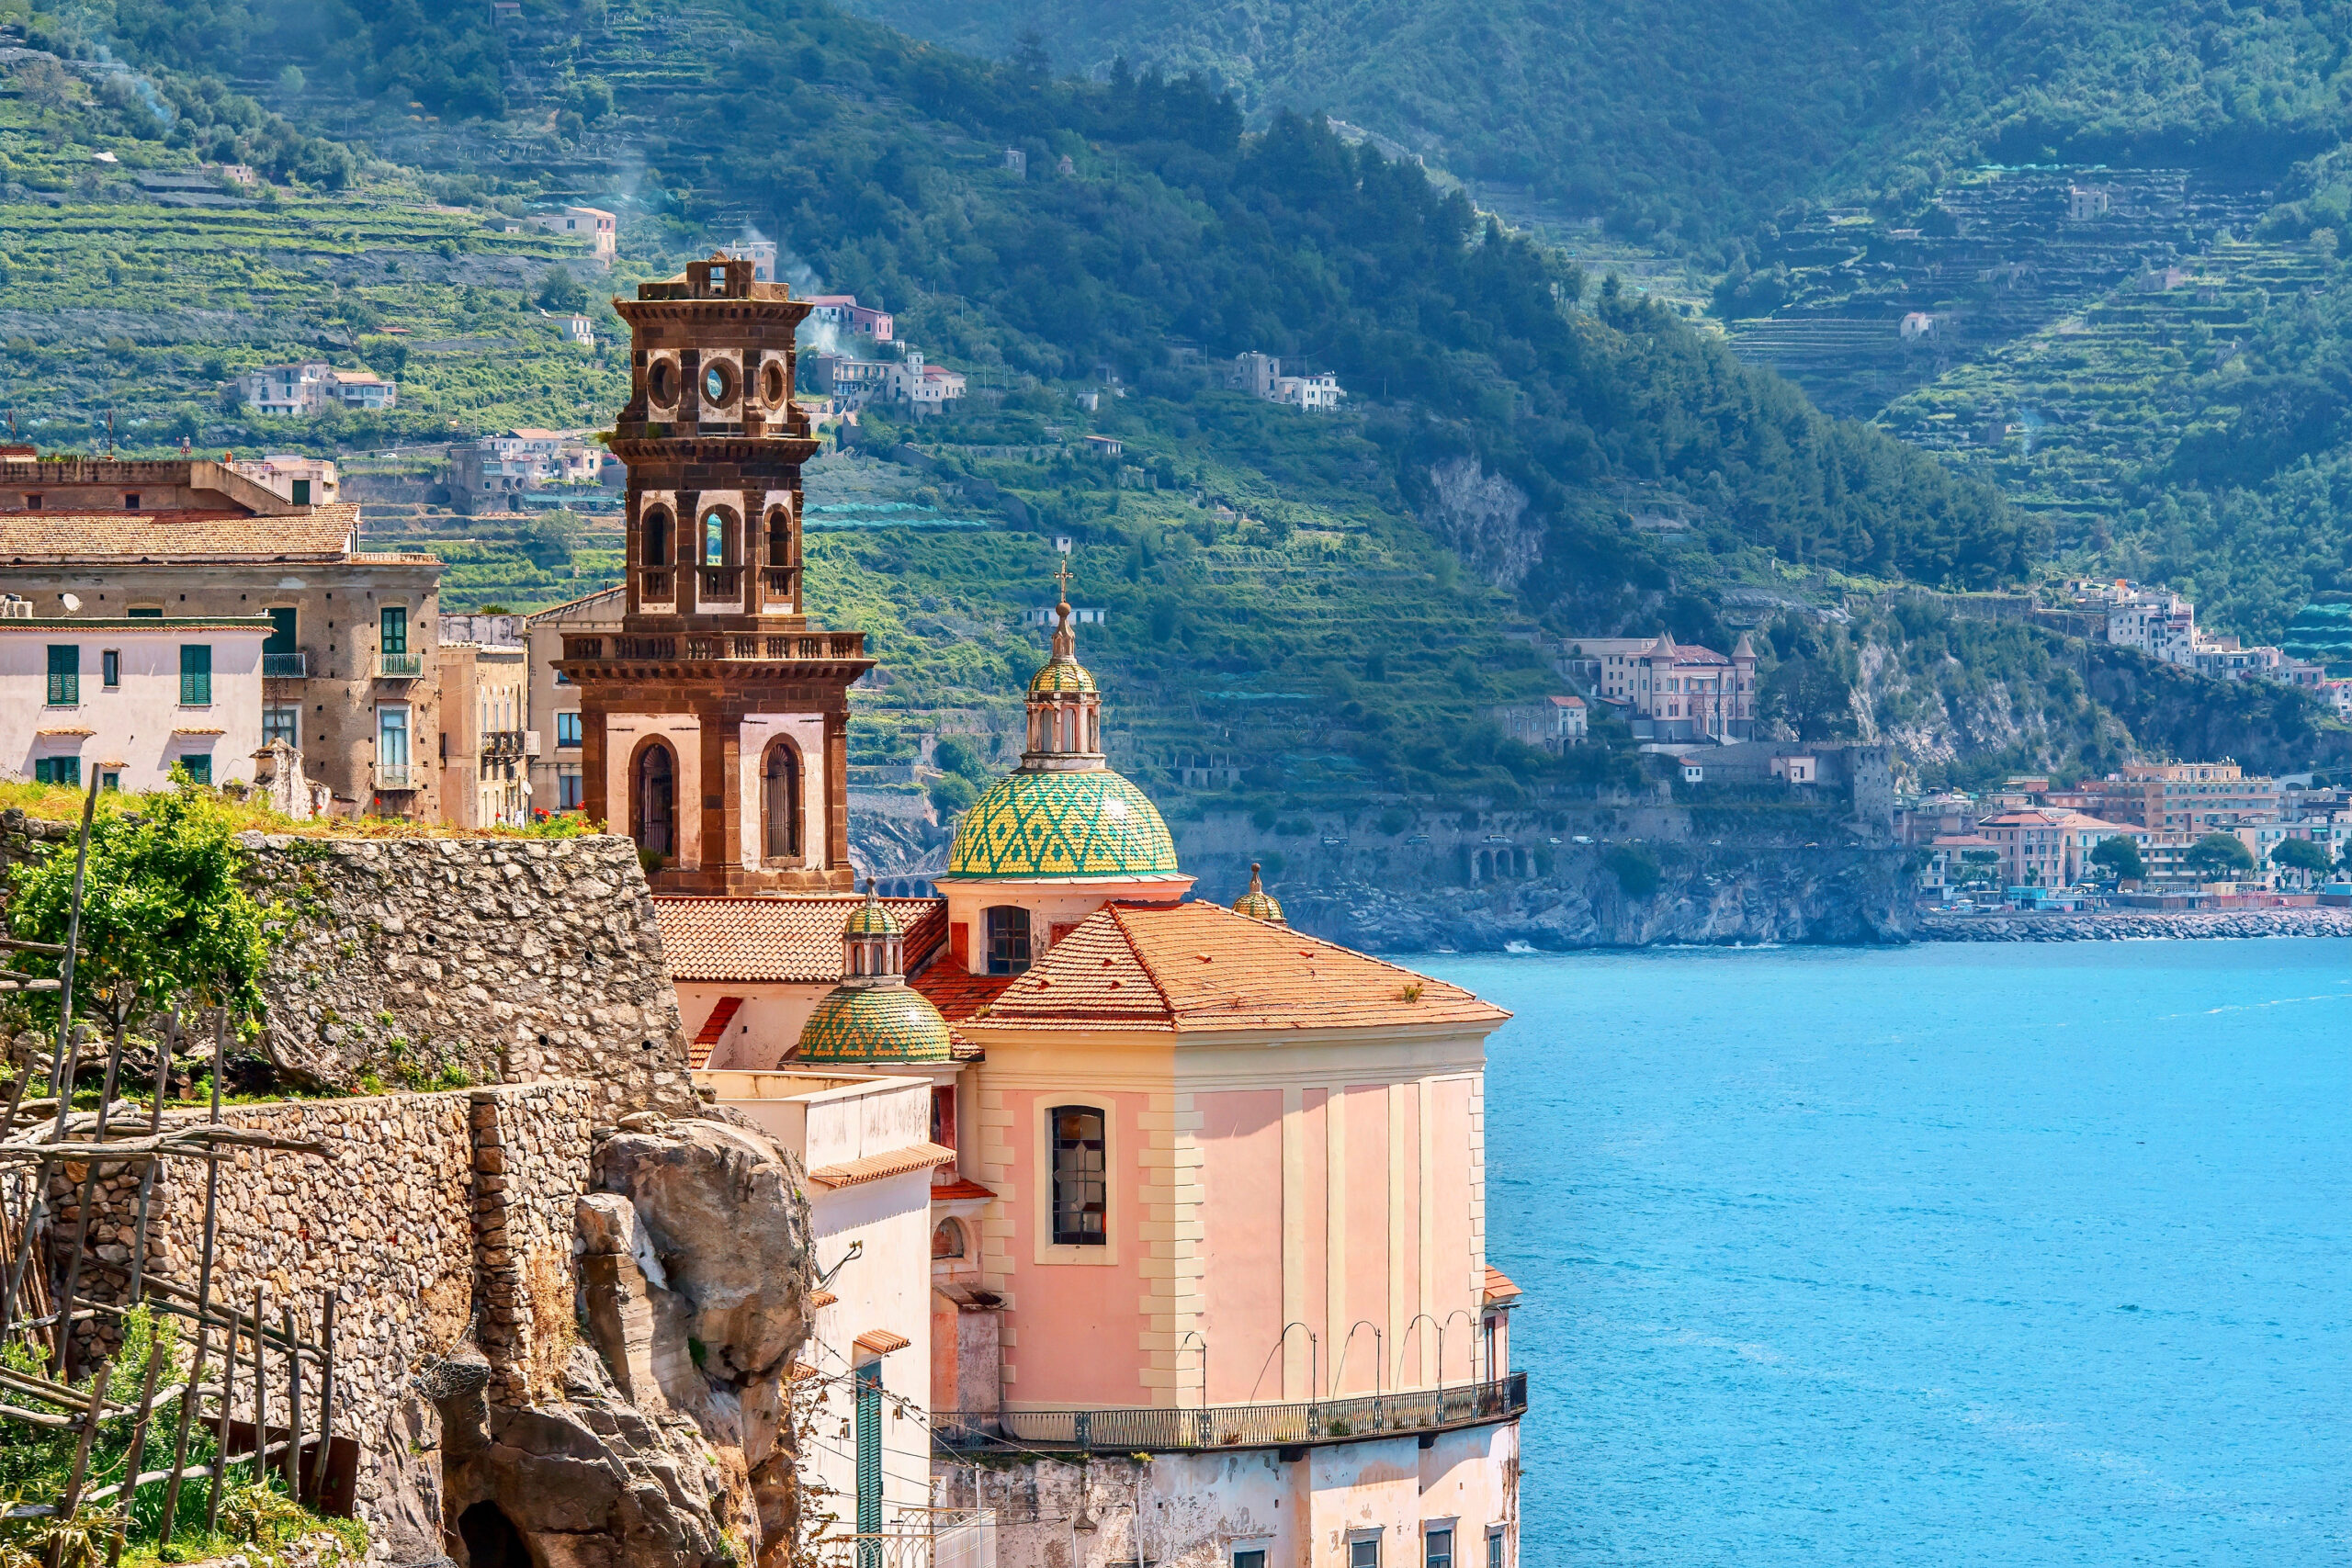 Photo of Castiglione di Ravello beach. A bell tower is shown next to an exquisite green and yellow majolica tiled dome church. Light blue water and green mountains are seen in the background.